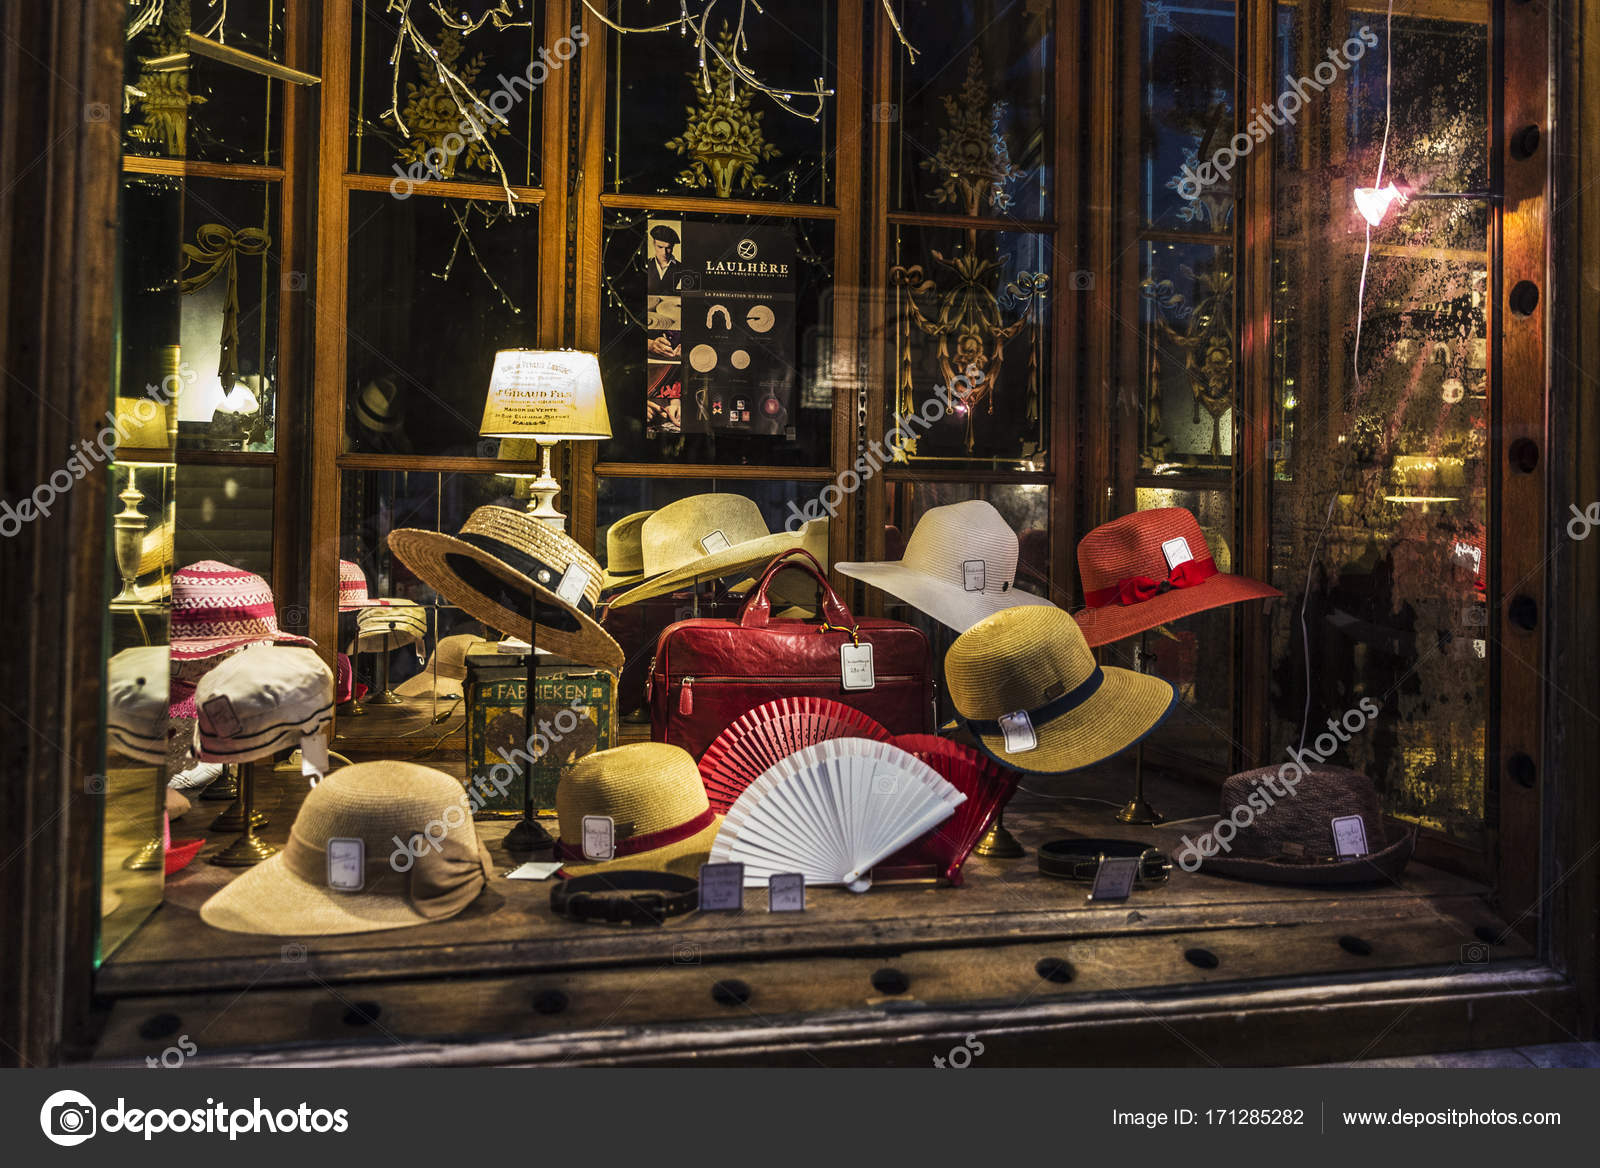 Millinery store in Brussels, Belgium – Stock Editorial Photo